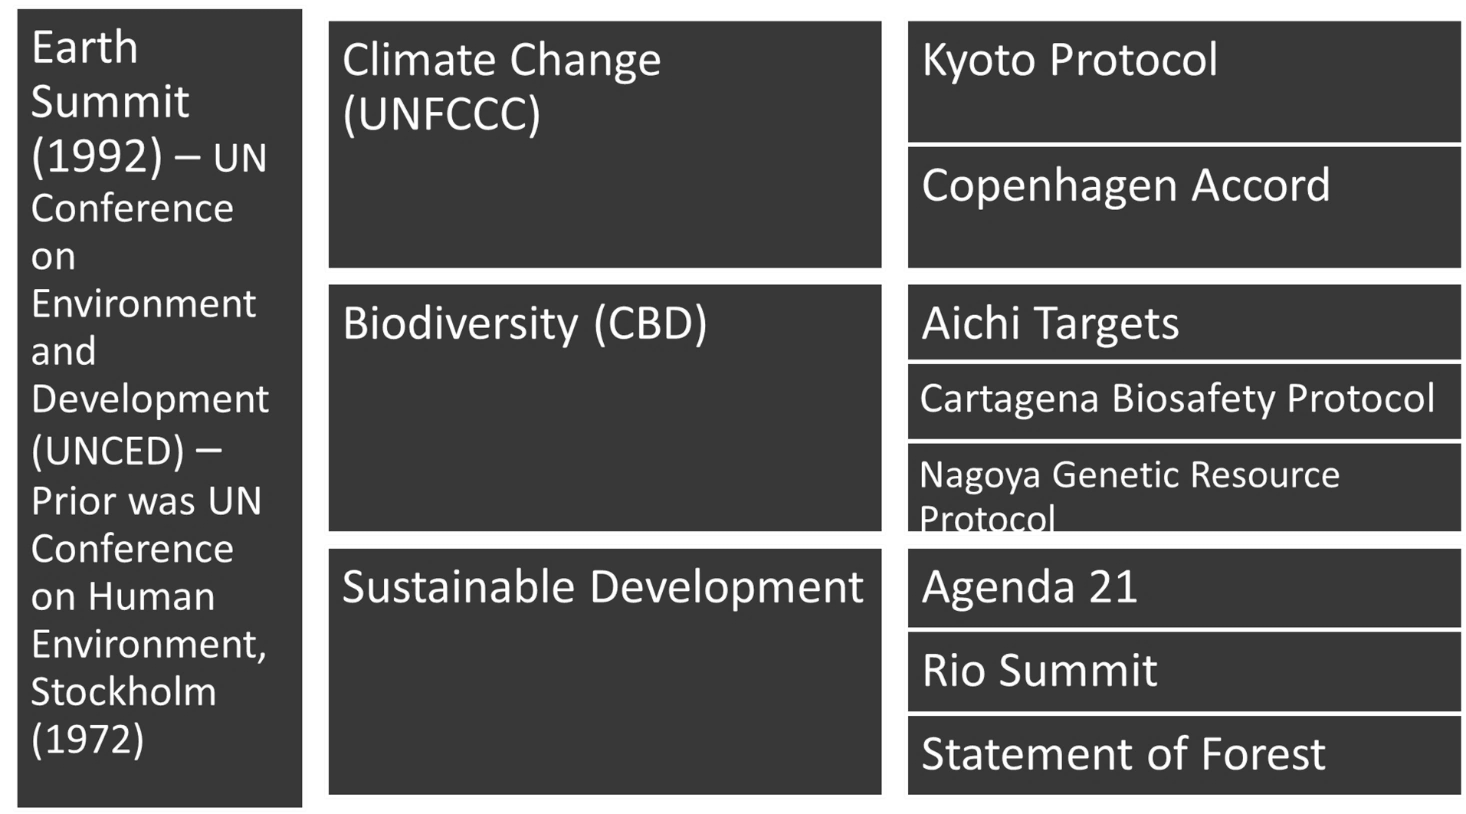 Image of Earth Summit Key Aspects